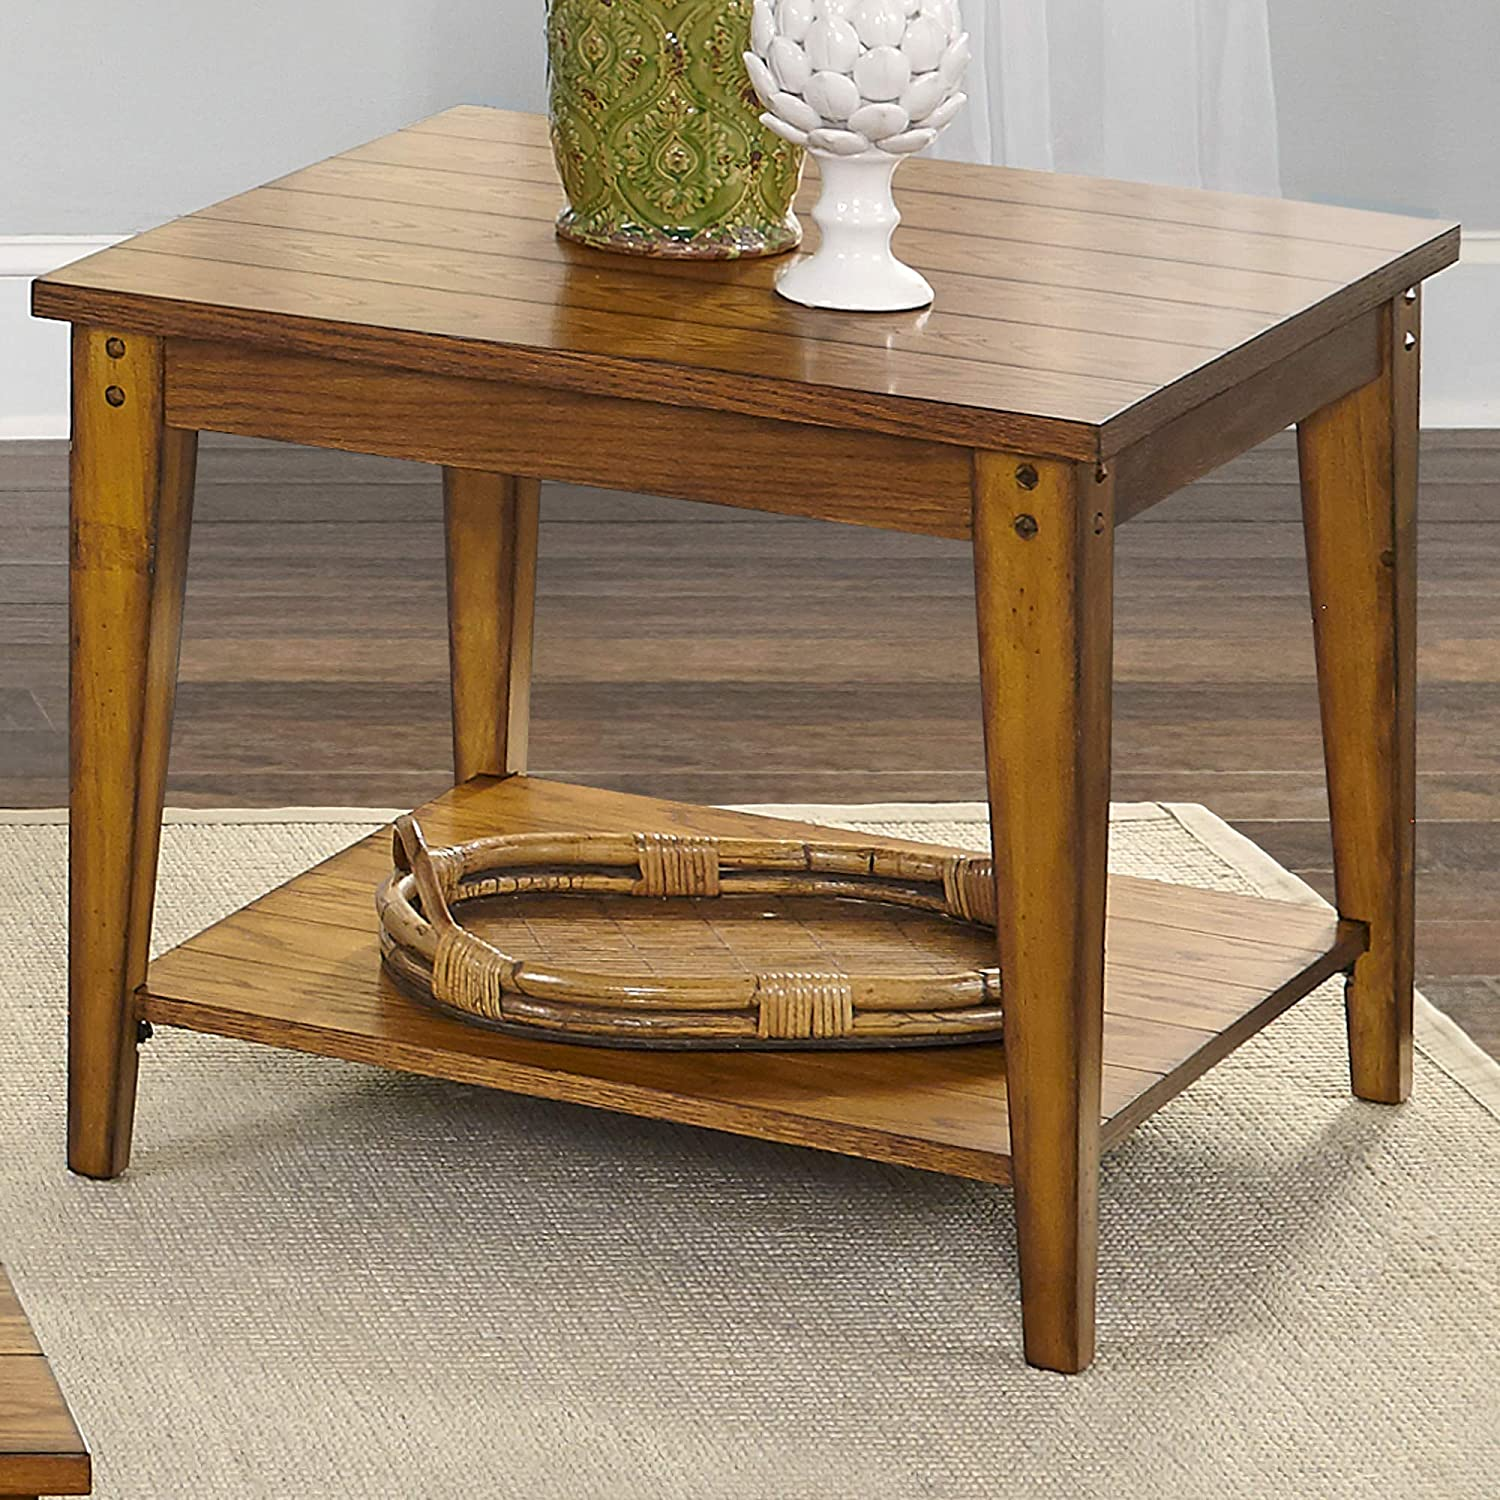 Liberty Furniture Industries Lake House Square Lamp Table, W27 x D27 x H23, Medium Brown